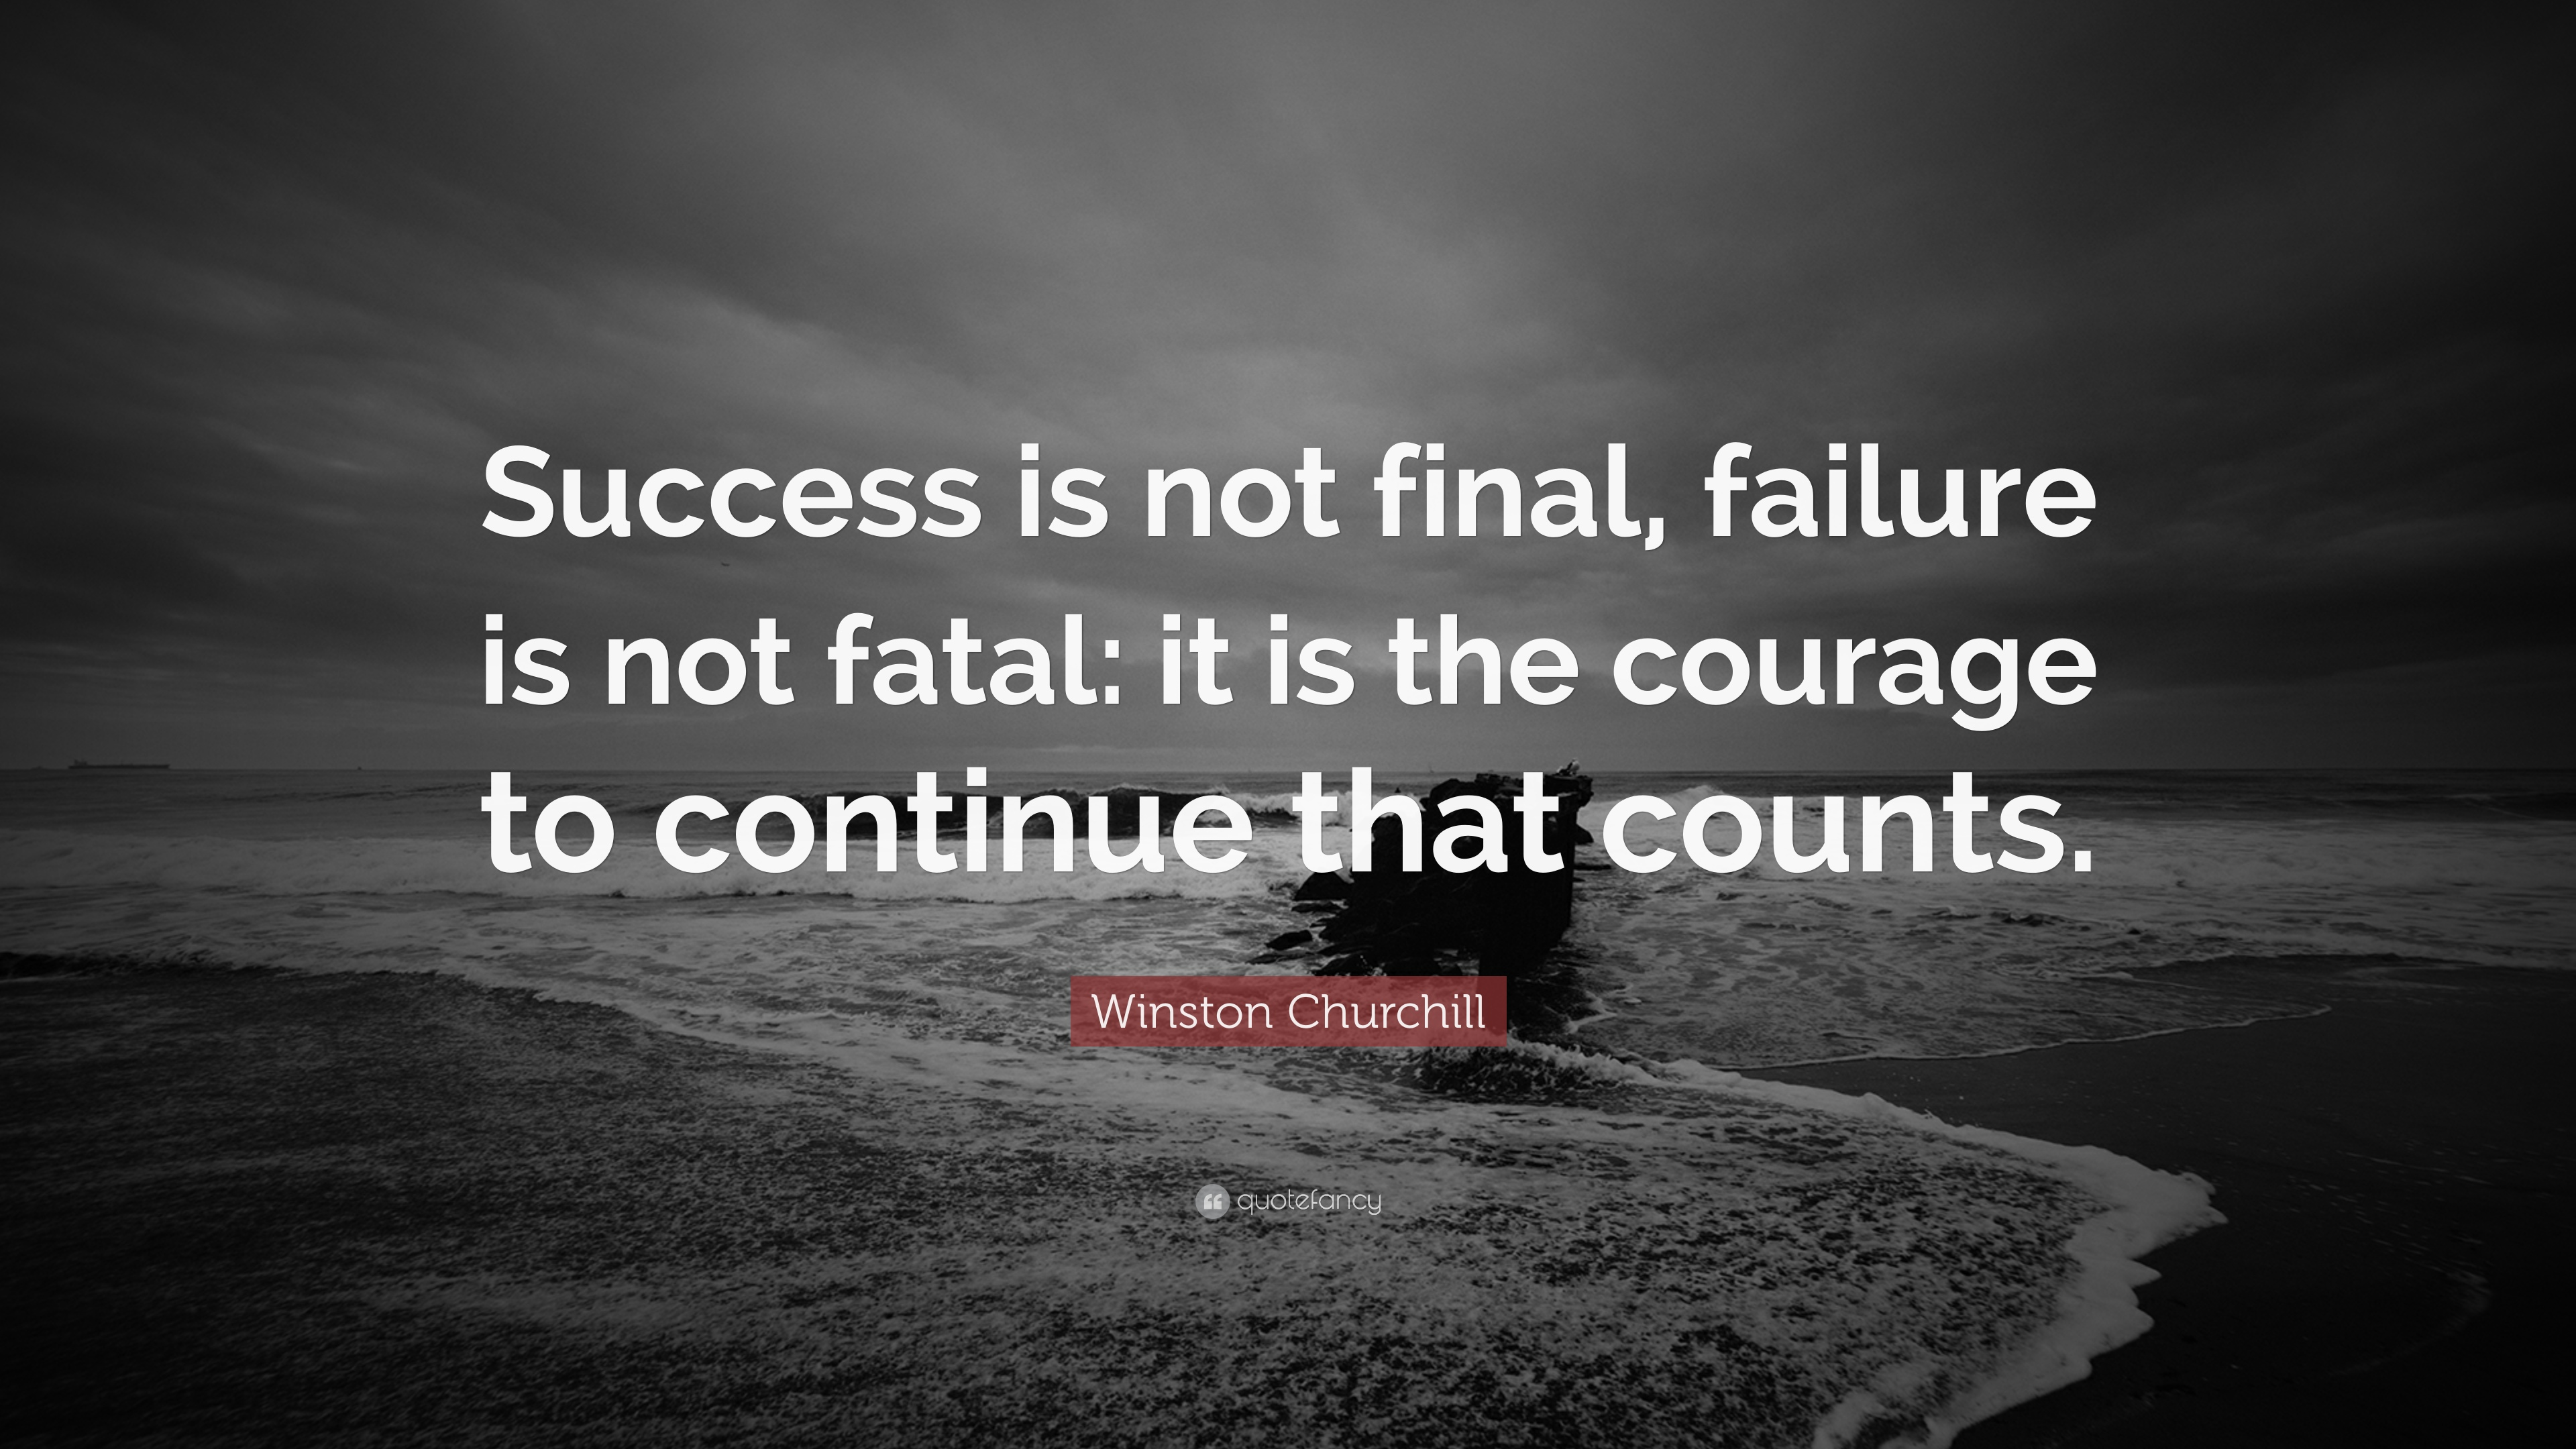 Winston Churchill Quote Success Is Not Final Failure Is Not Fatal It Is The Courage To